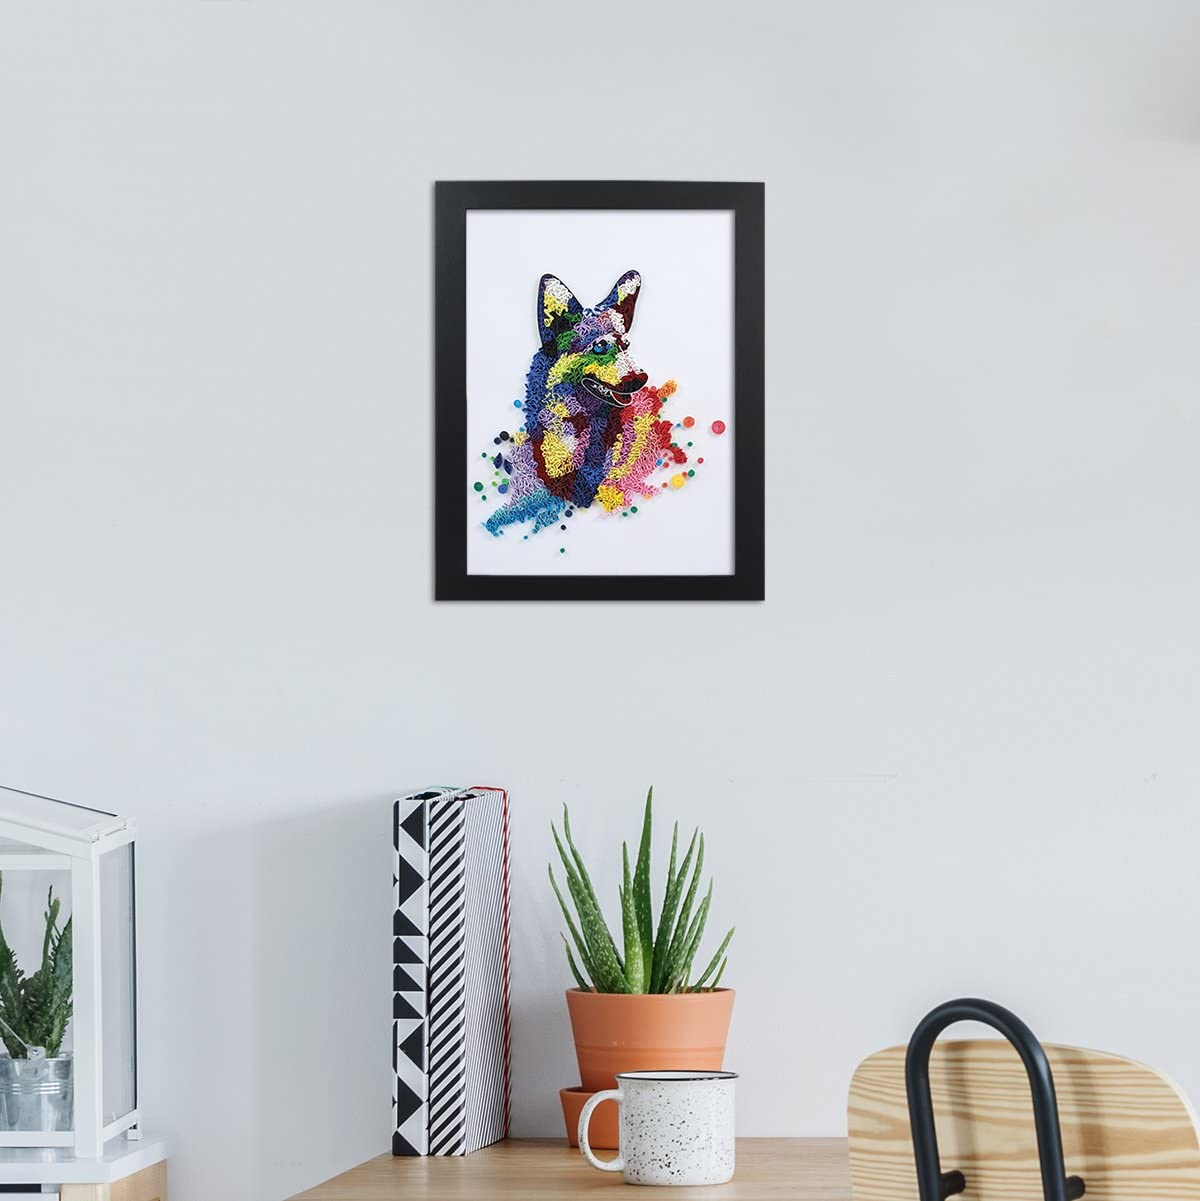 German Shepherd Handmade Paper Quilling Artwork A4 Size Framed 3D Stand Art as Unique Gift for Home Decor